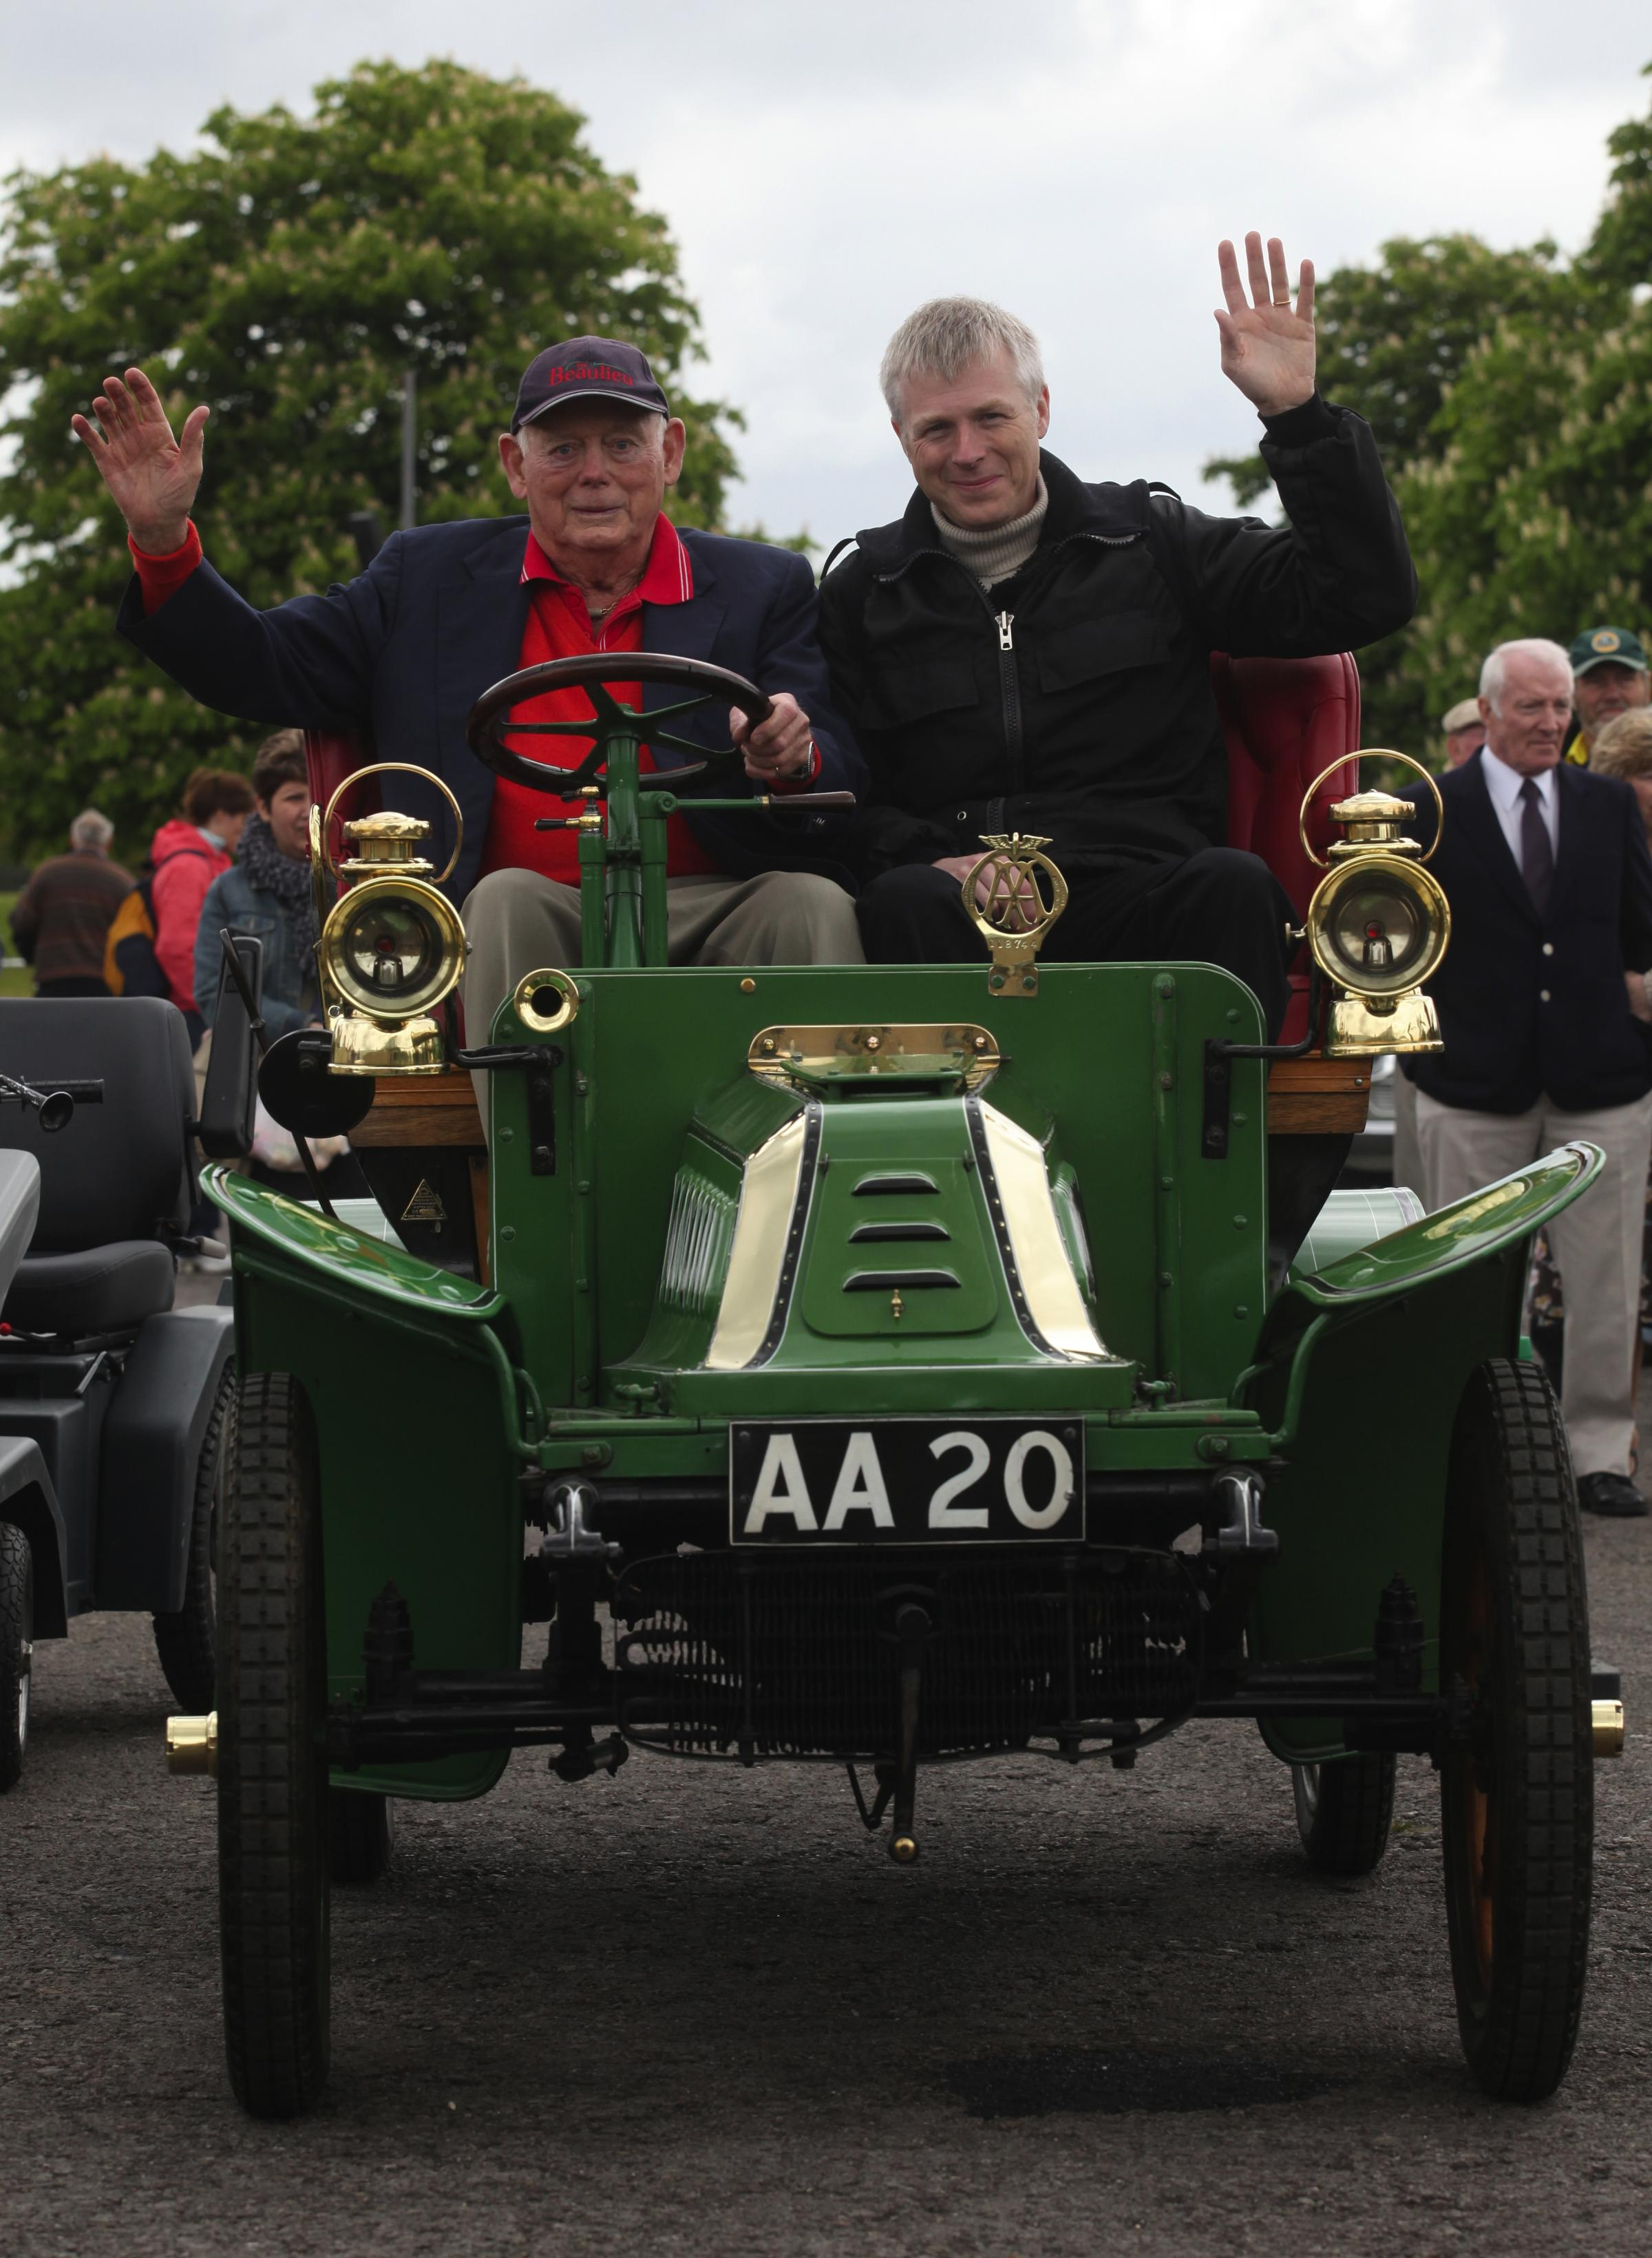 Lord Montagu and Ralph Montagu in a 1903 De Dian Bouton during the 50th Anniversary of the National Motor Museum at Beaulieu.